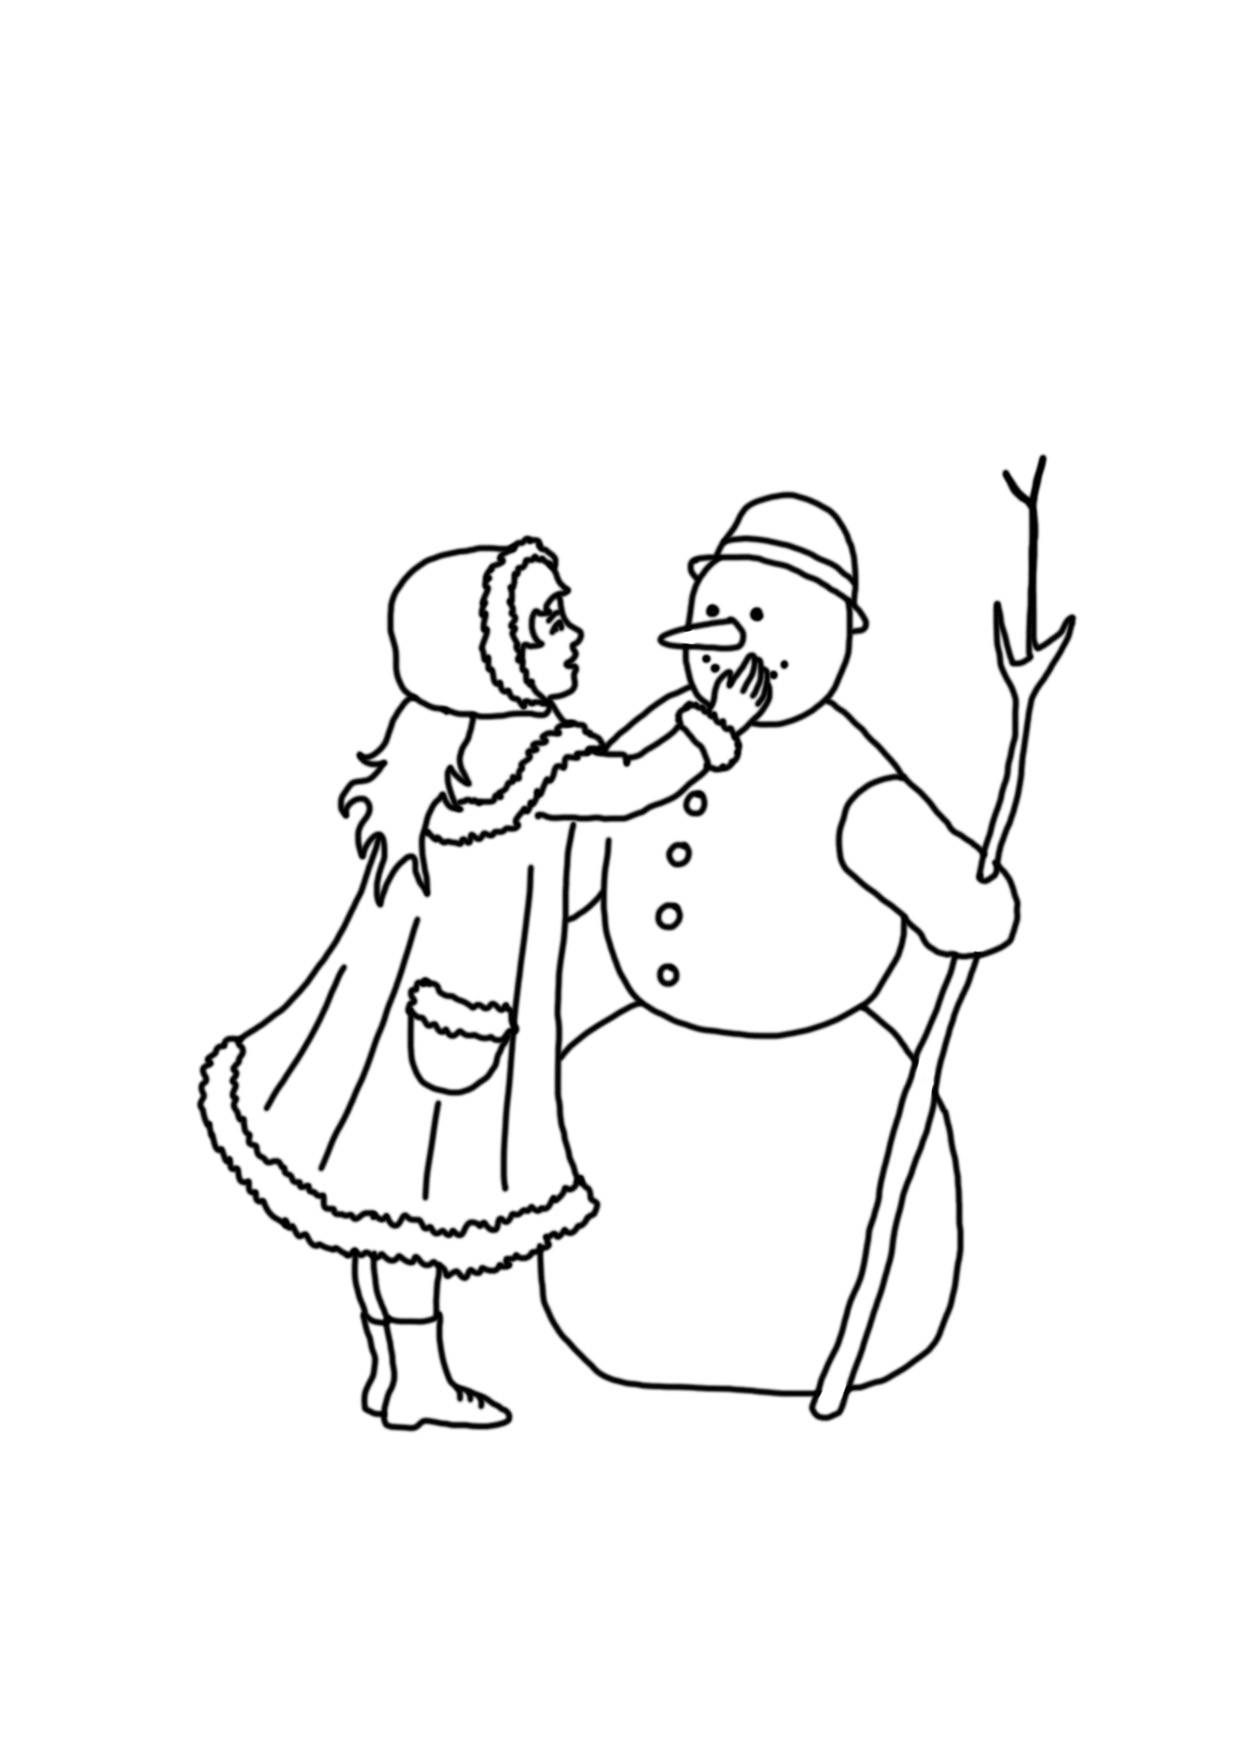 coloring page with girl and snowman